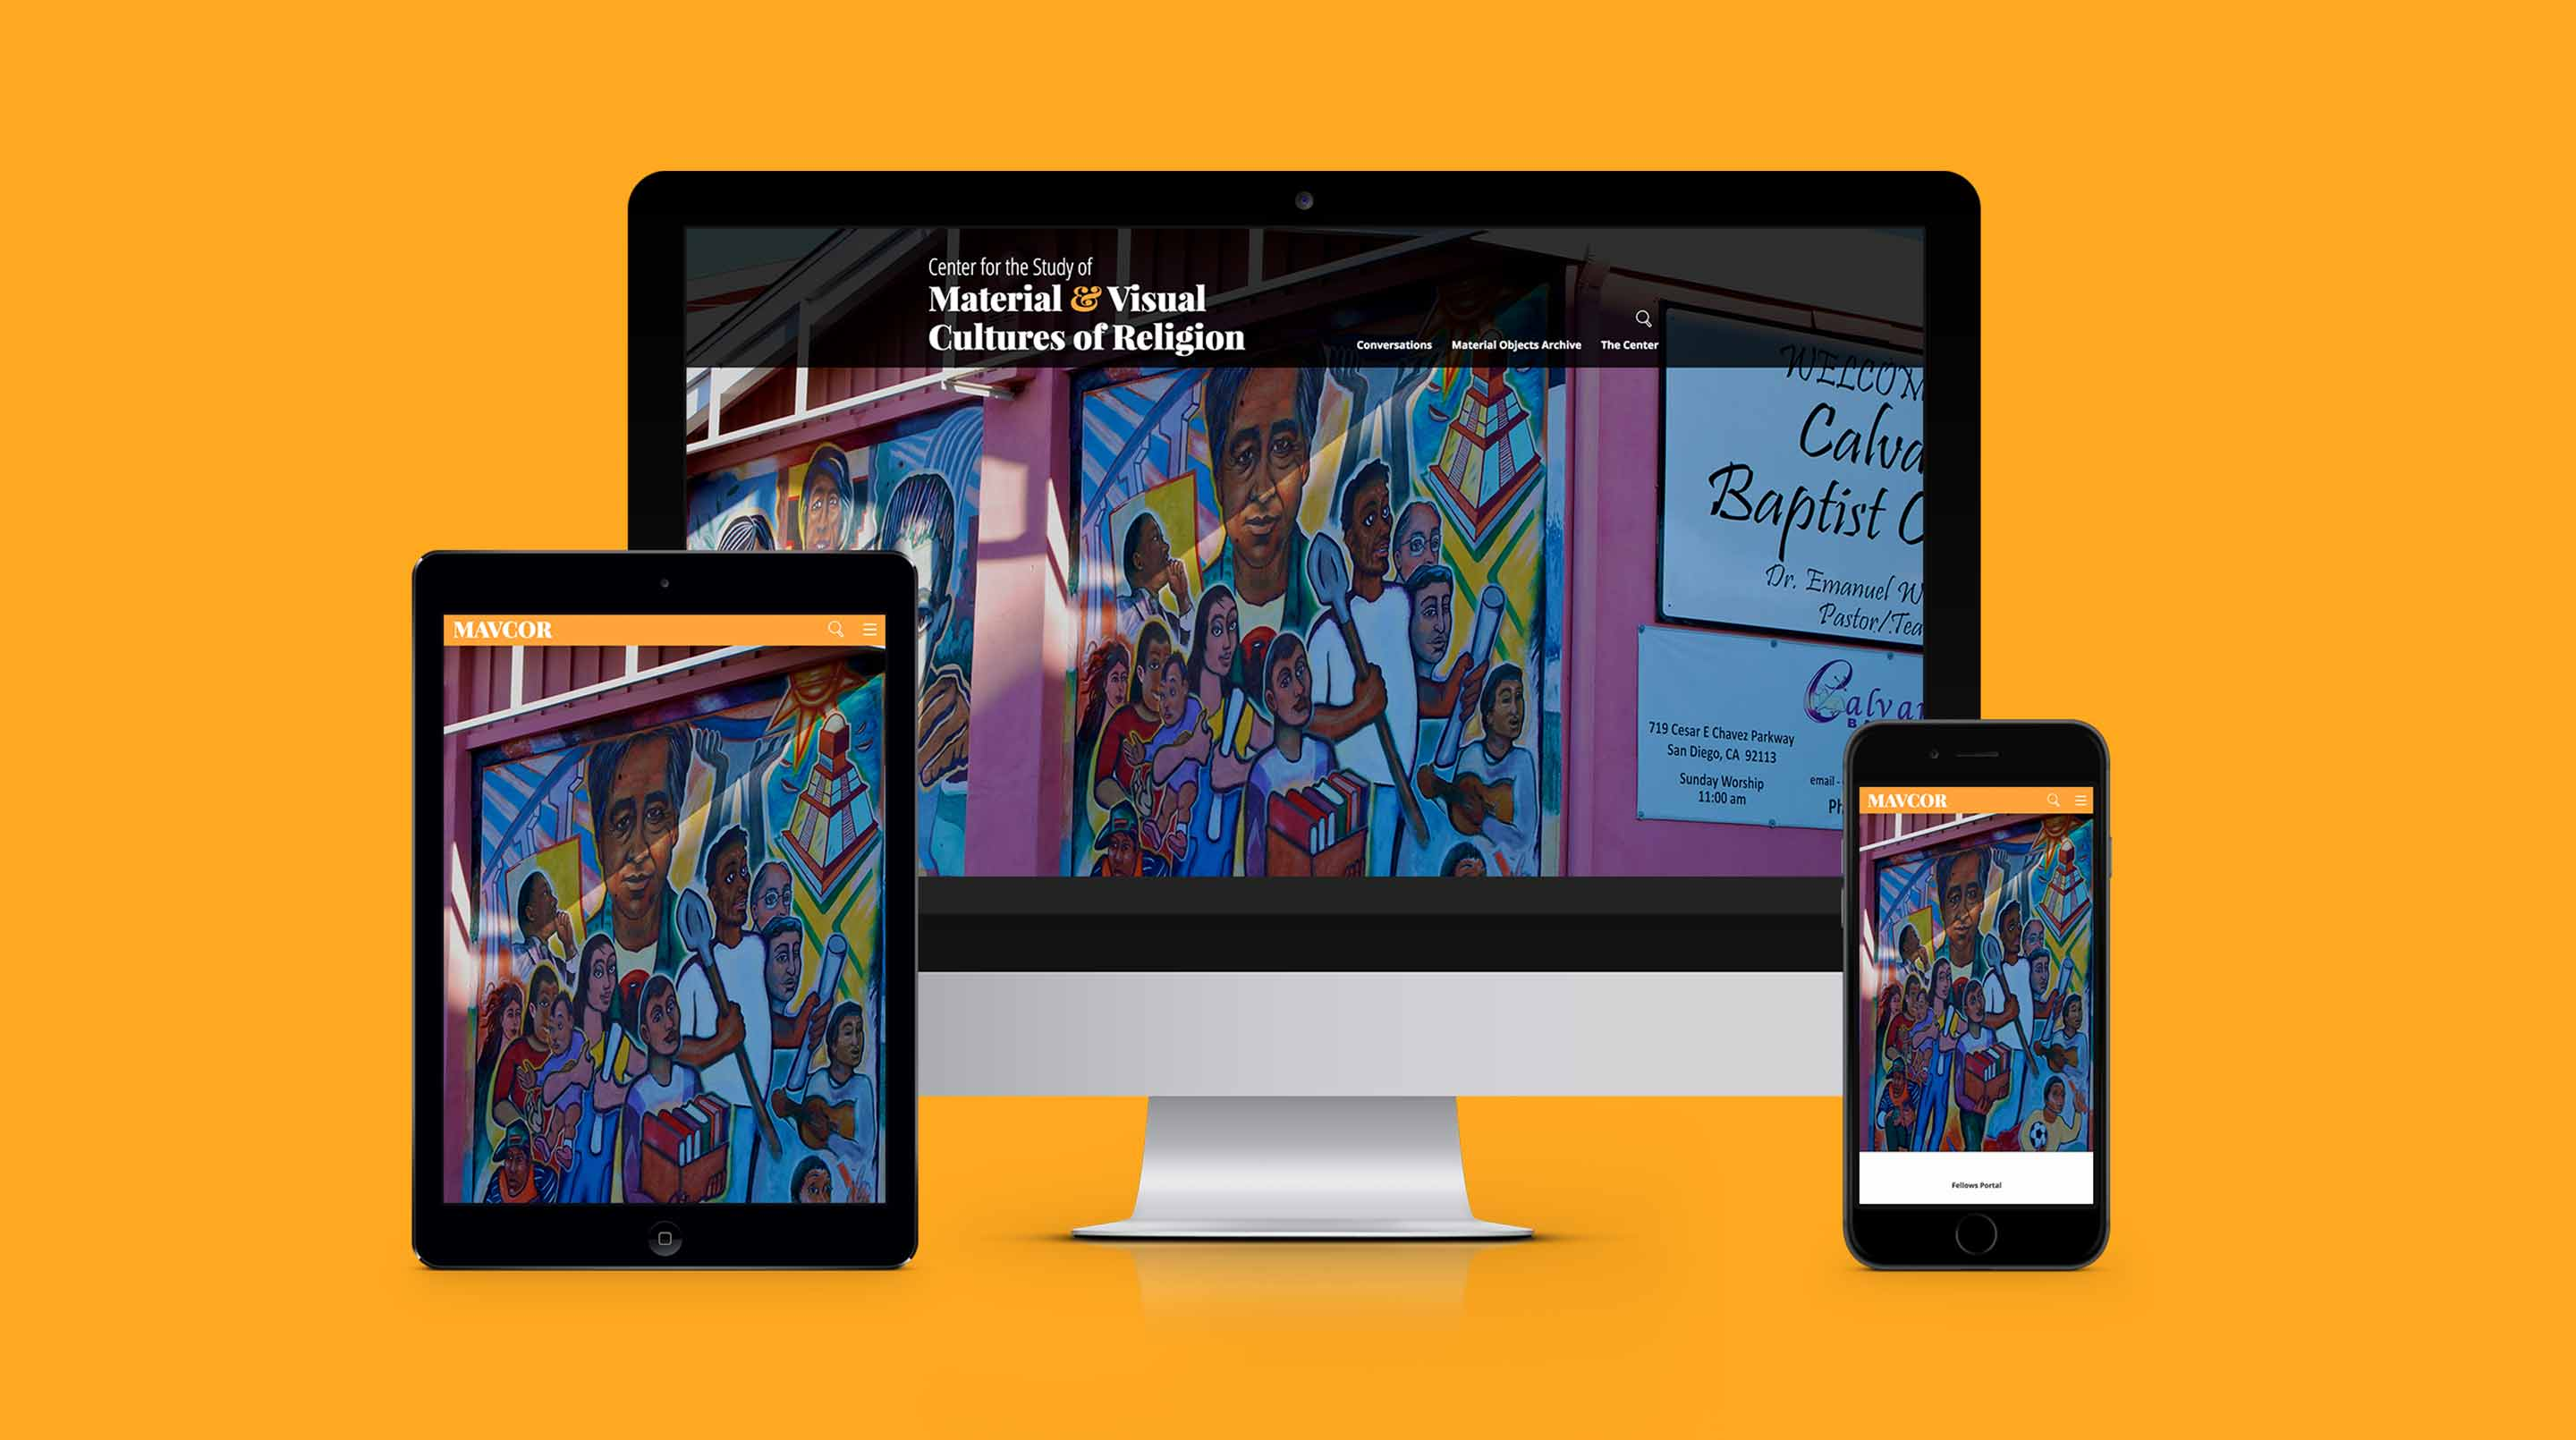 Different devices show MAVCOR's responsive homepage with an image of a mural of workers on the side of a church.